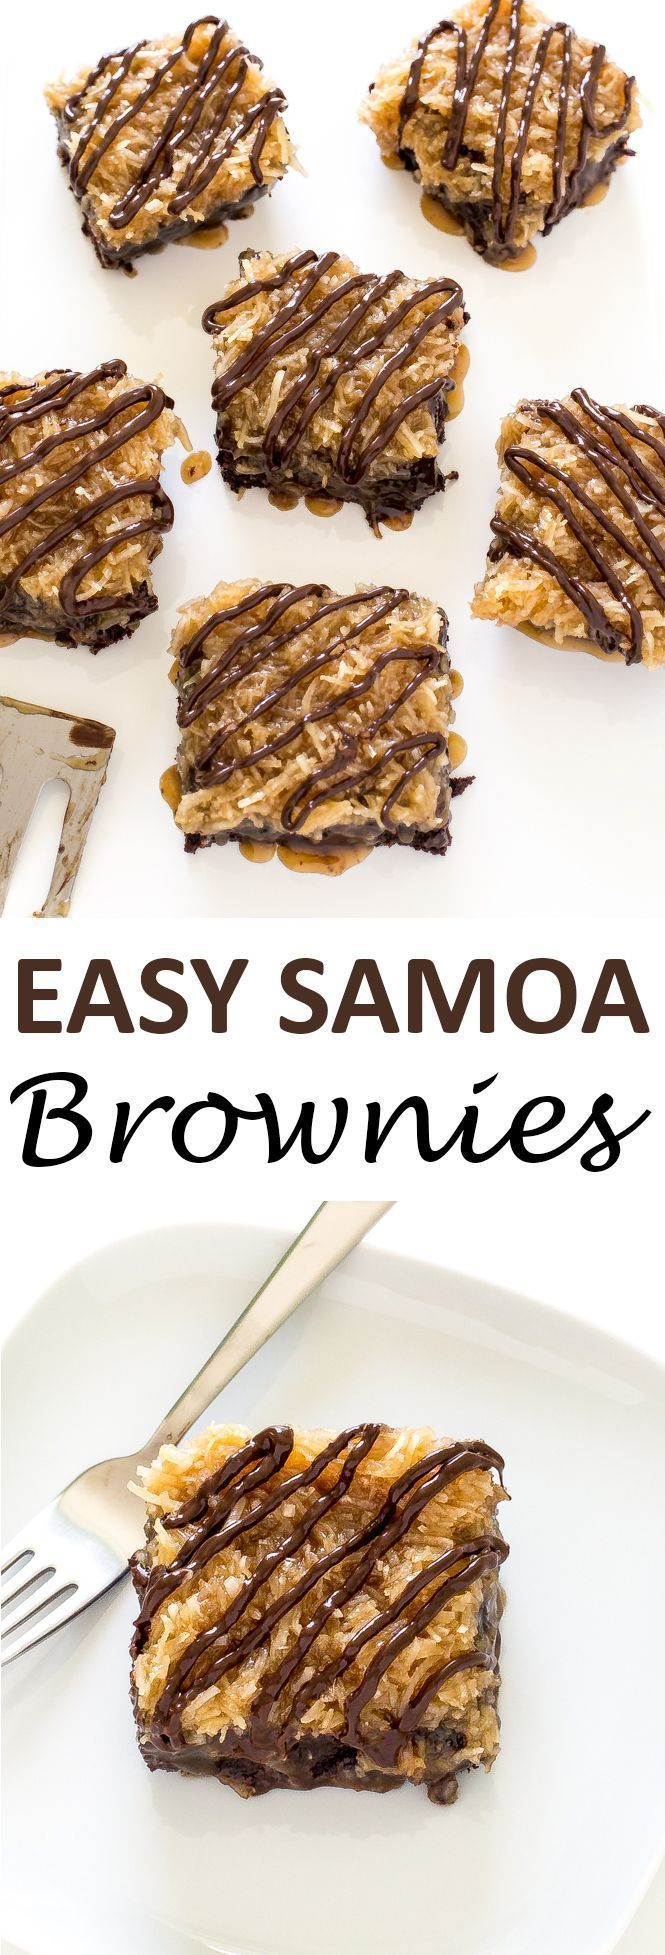 Rich and chocolatey Samoa Brownies topped with a sweet coconut topping. They taste just like the Samoa Cookie you love!   chefsavvy.com #recipe #samoa #brownie #dessert #chocolate #coconut